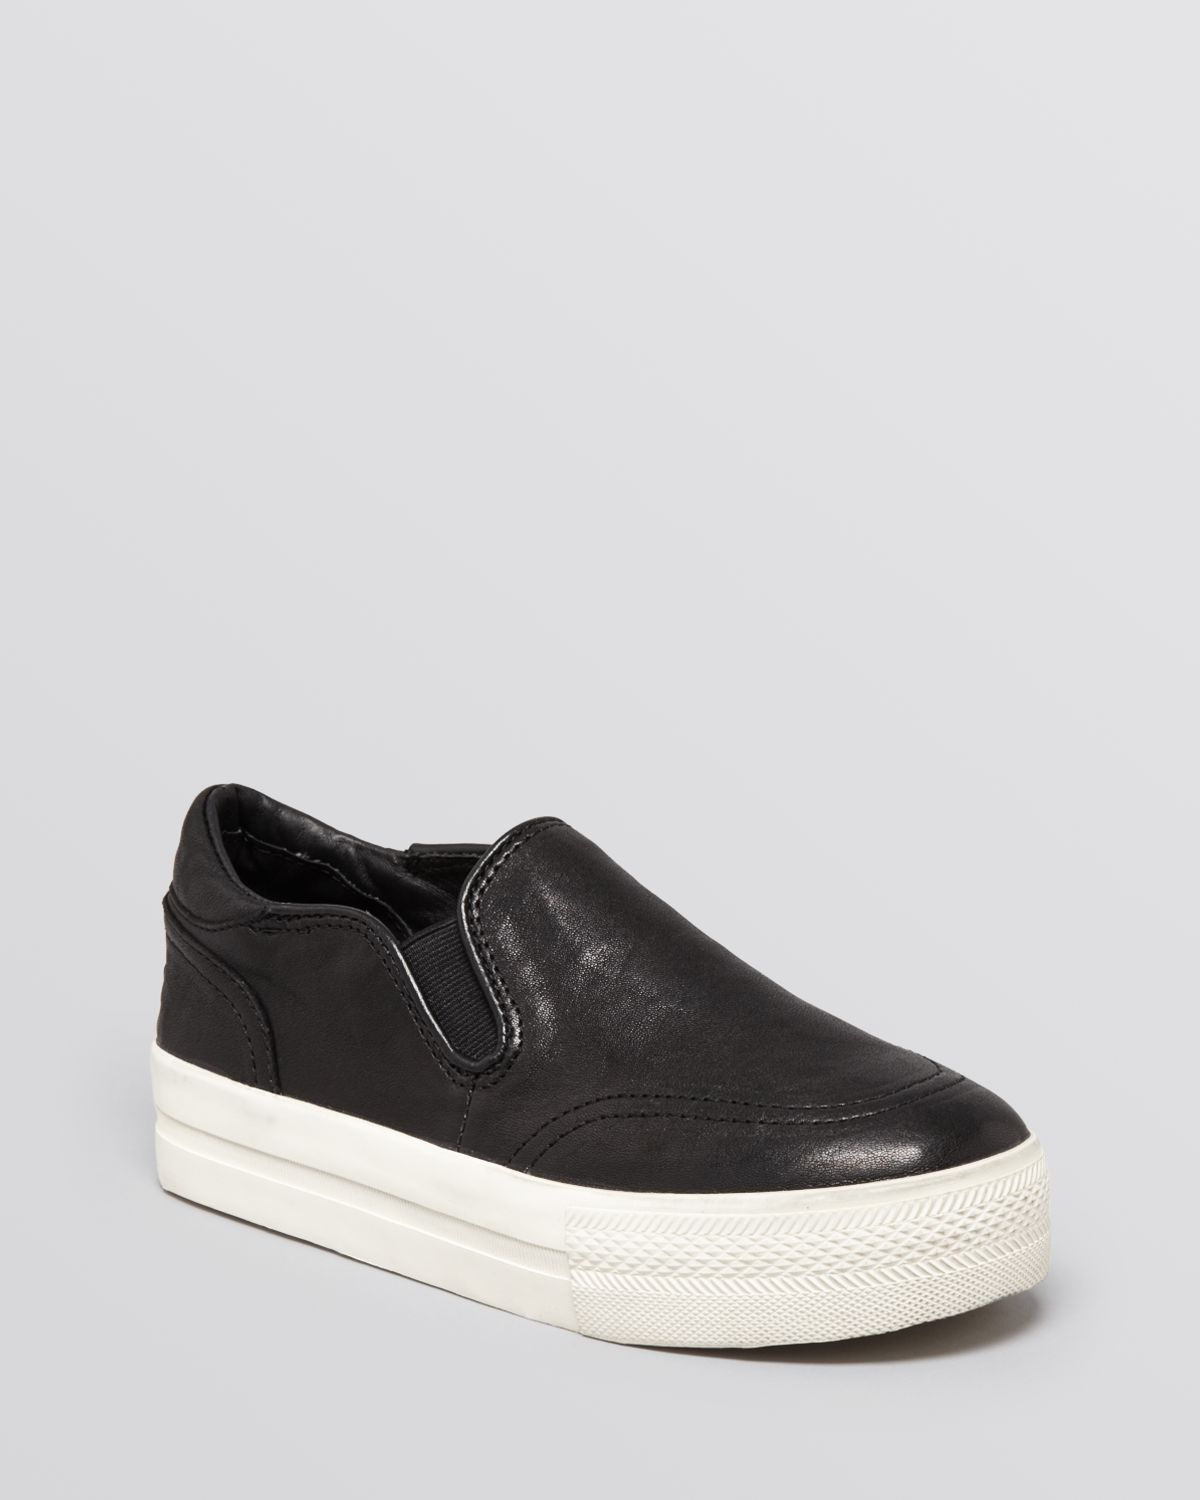 Ash Slip On Sneakers - Jungle | Bloomingdale's